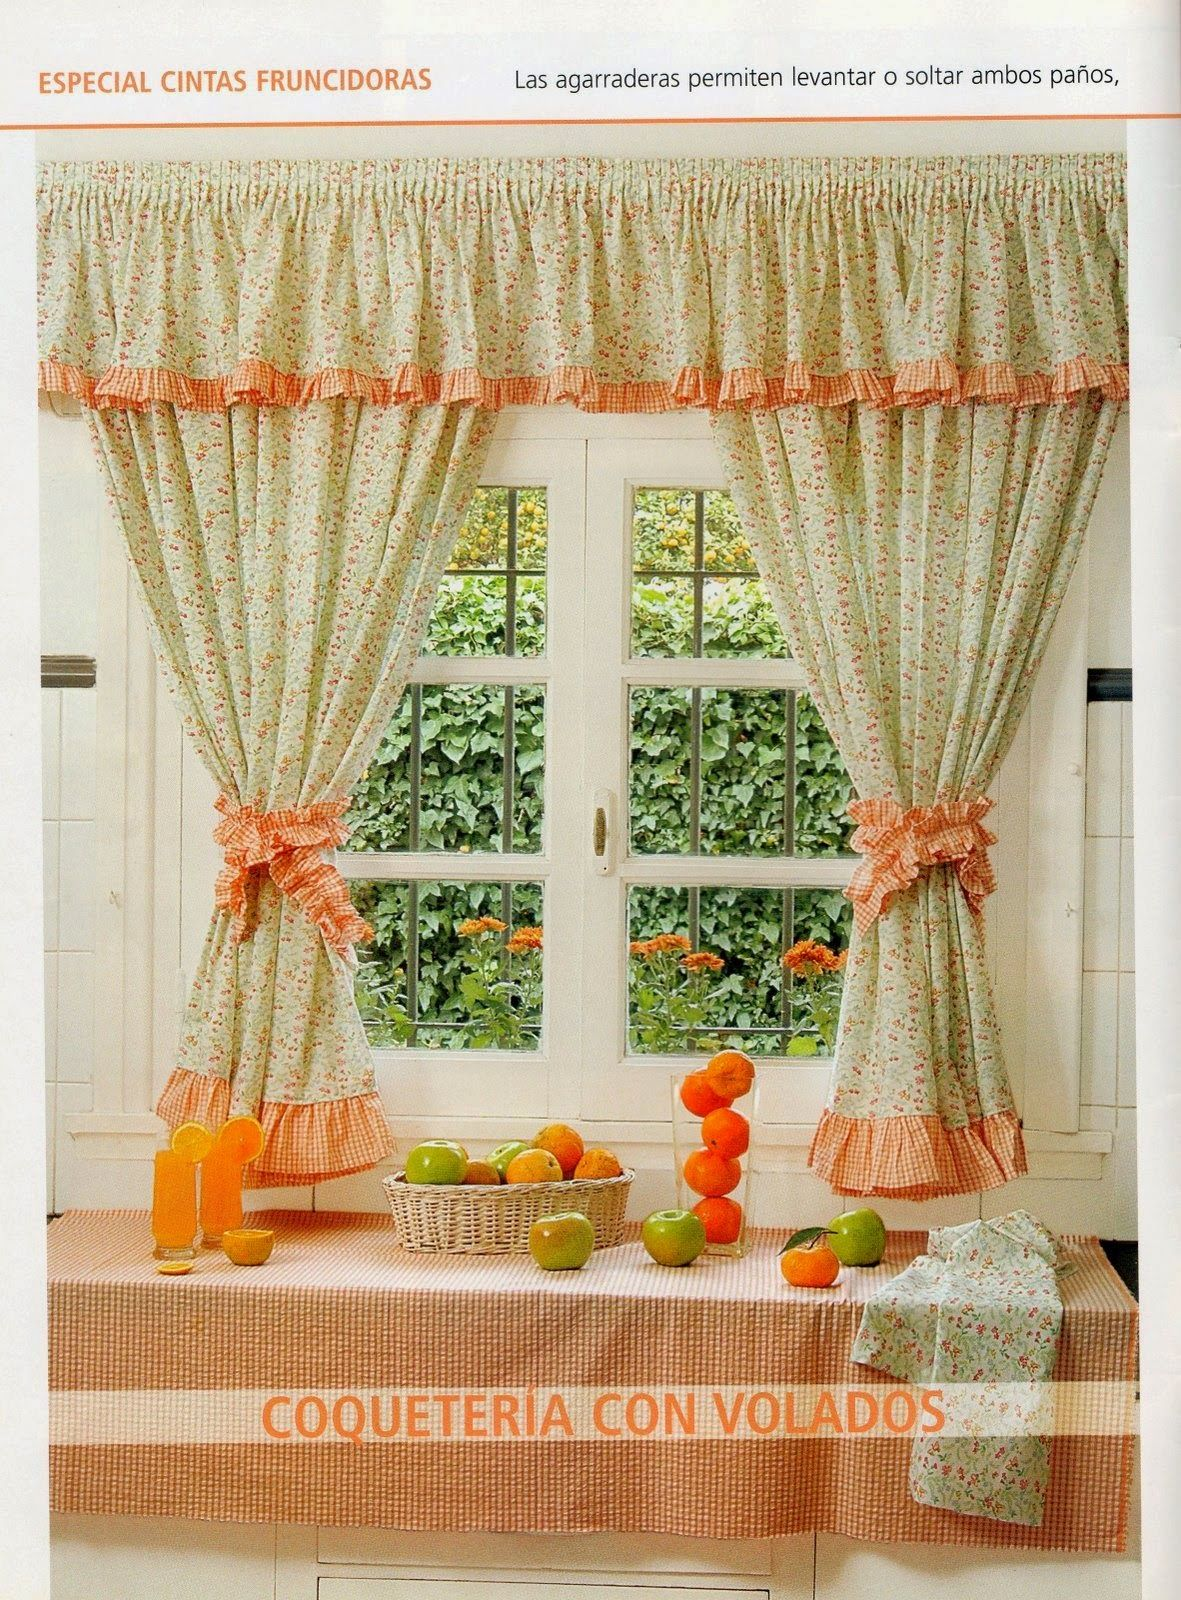 Como hacer cortinas on pinterest manualidades make curtains and watches - Cortinas para la cocina facilisimo ...